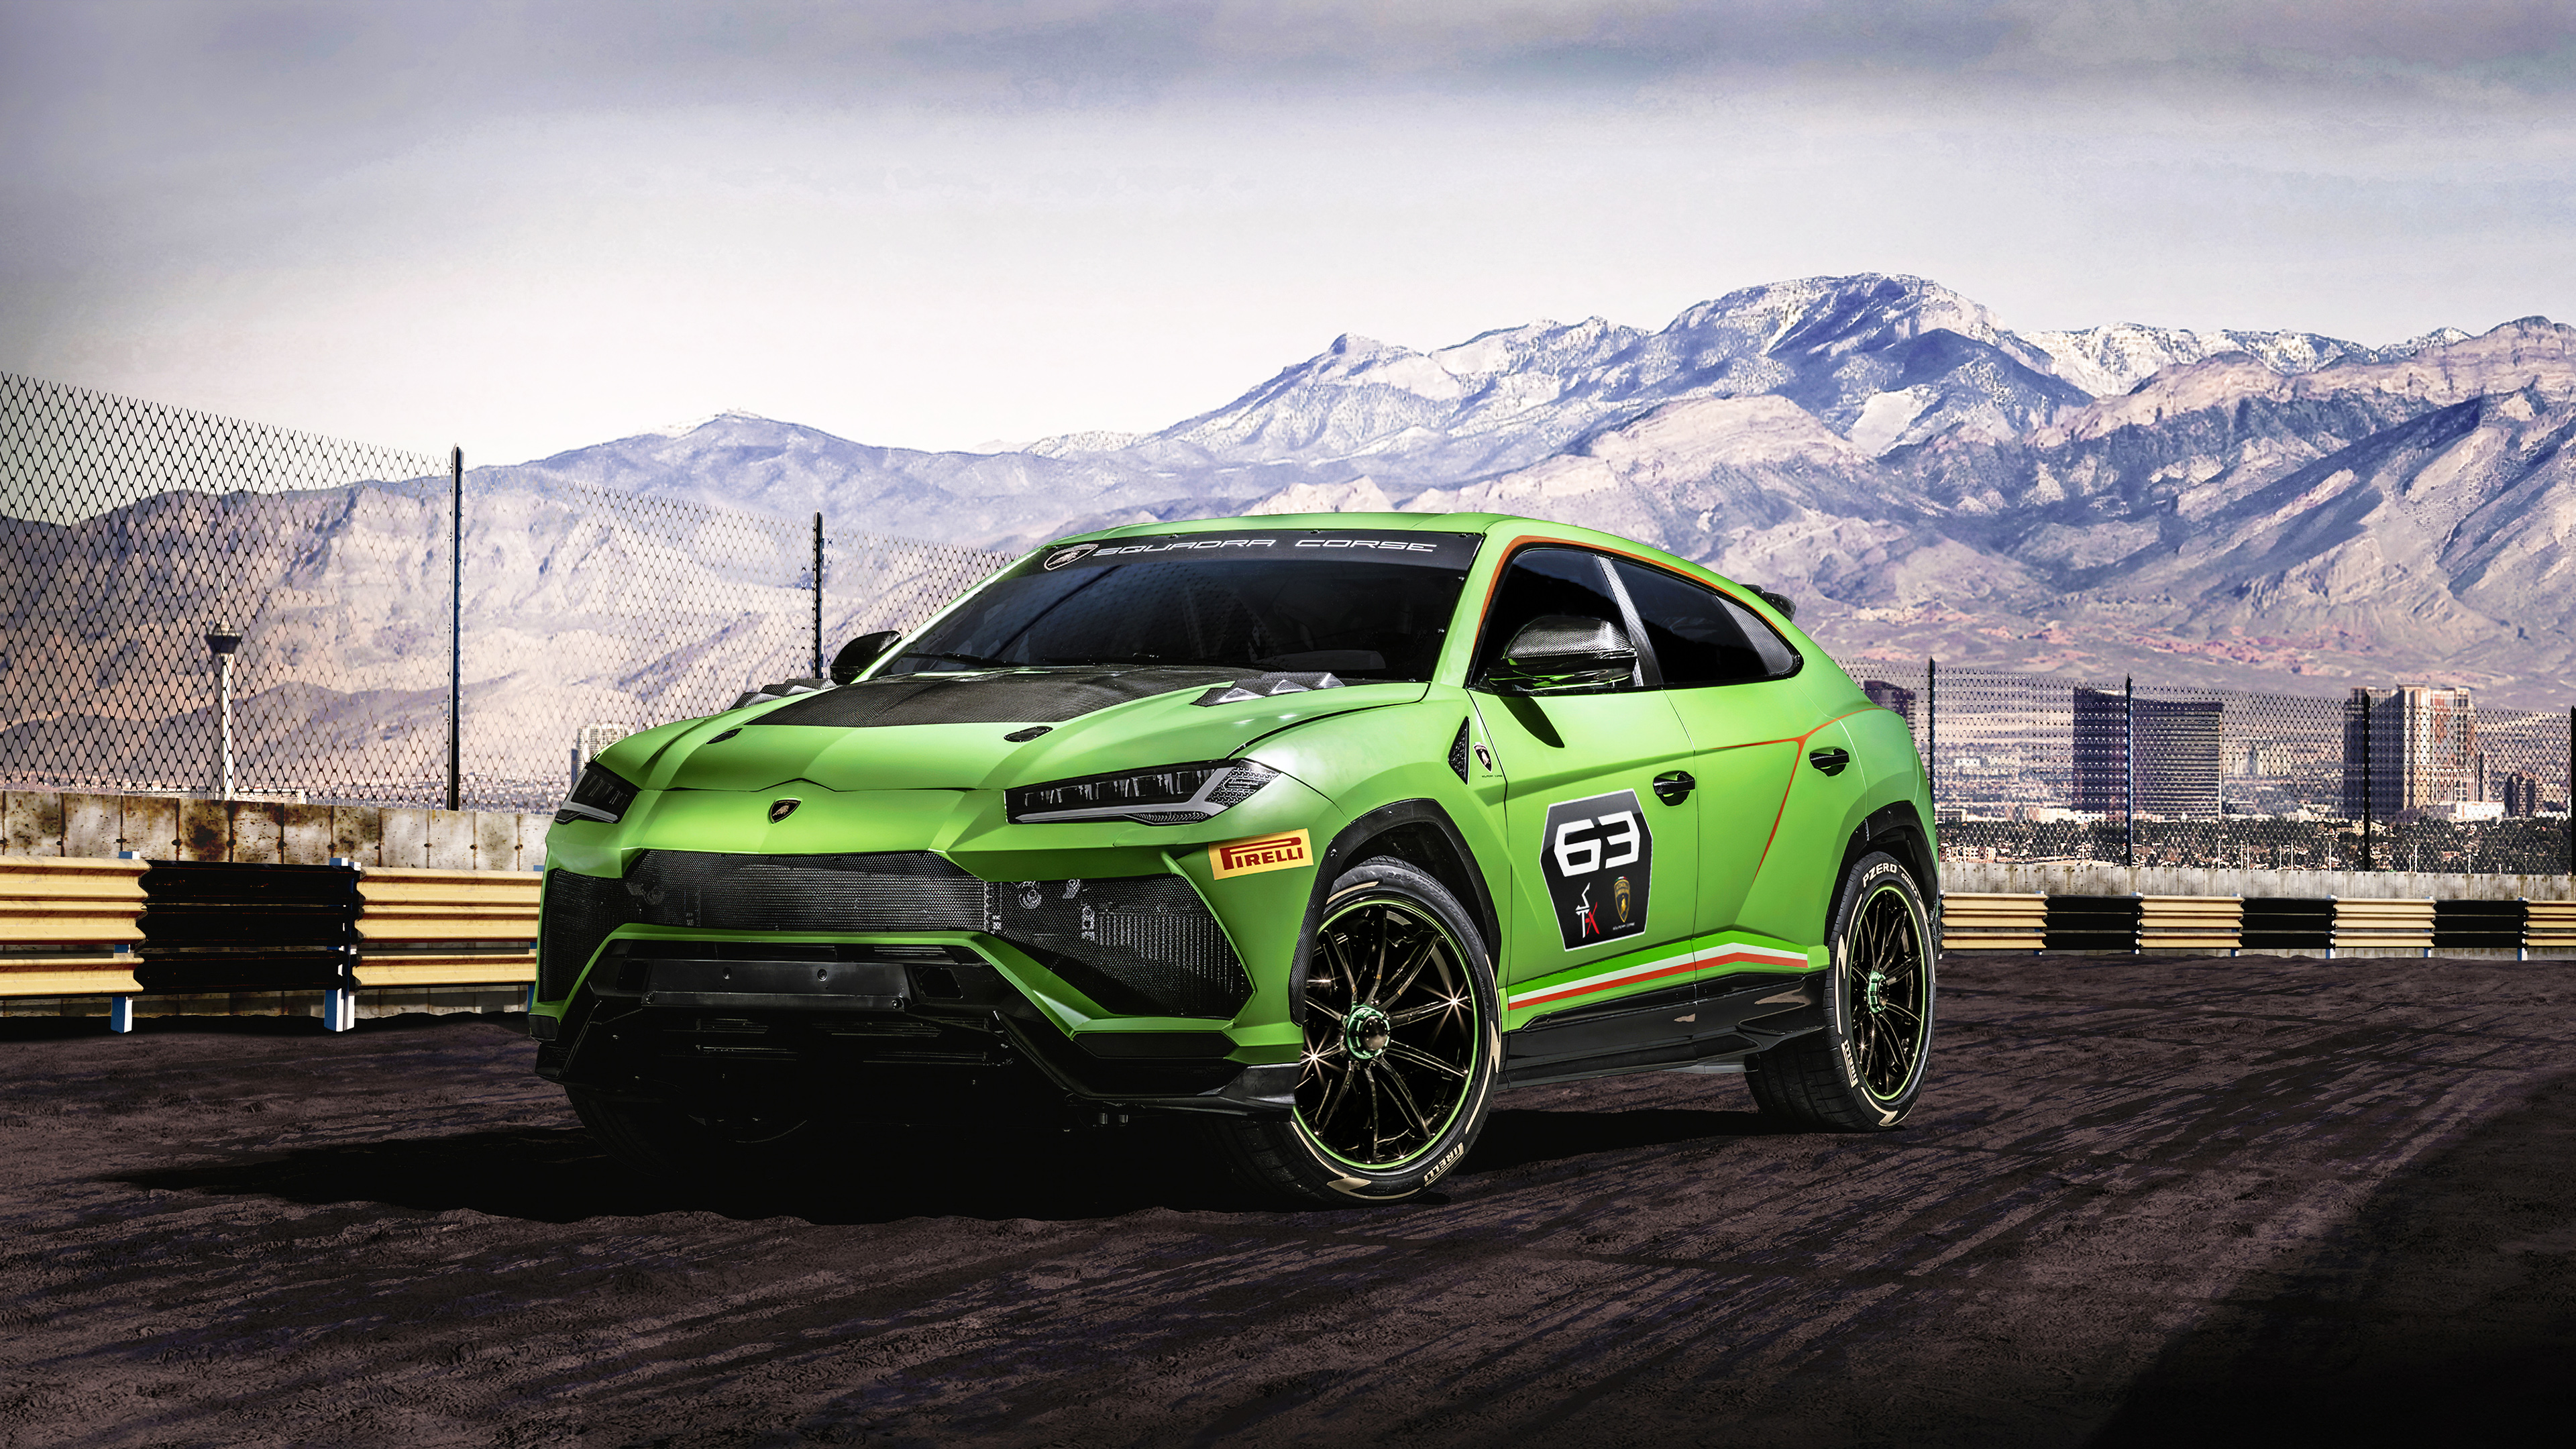 Lamborghini Urus St X Concept 2019 4k Wallpapers Hd Wallpapers